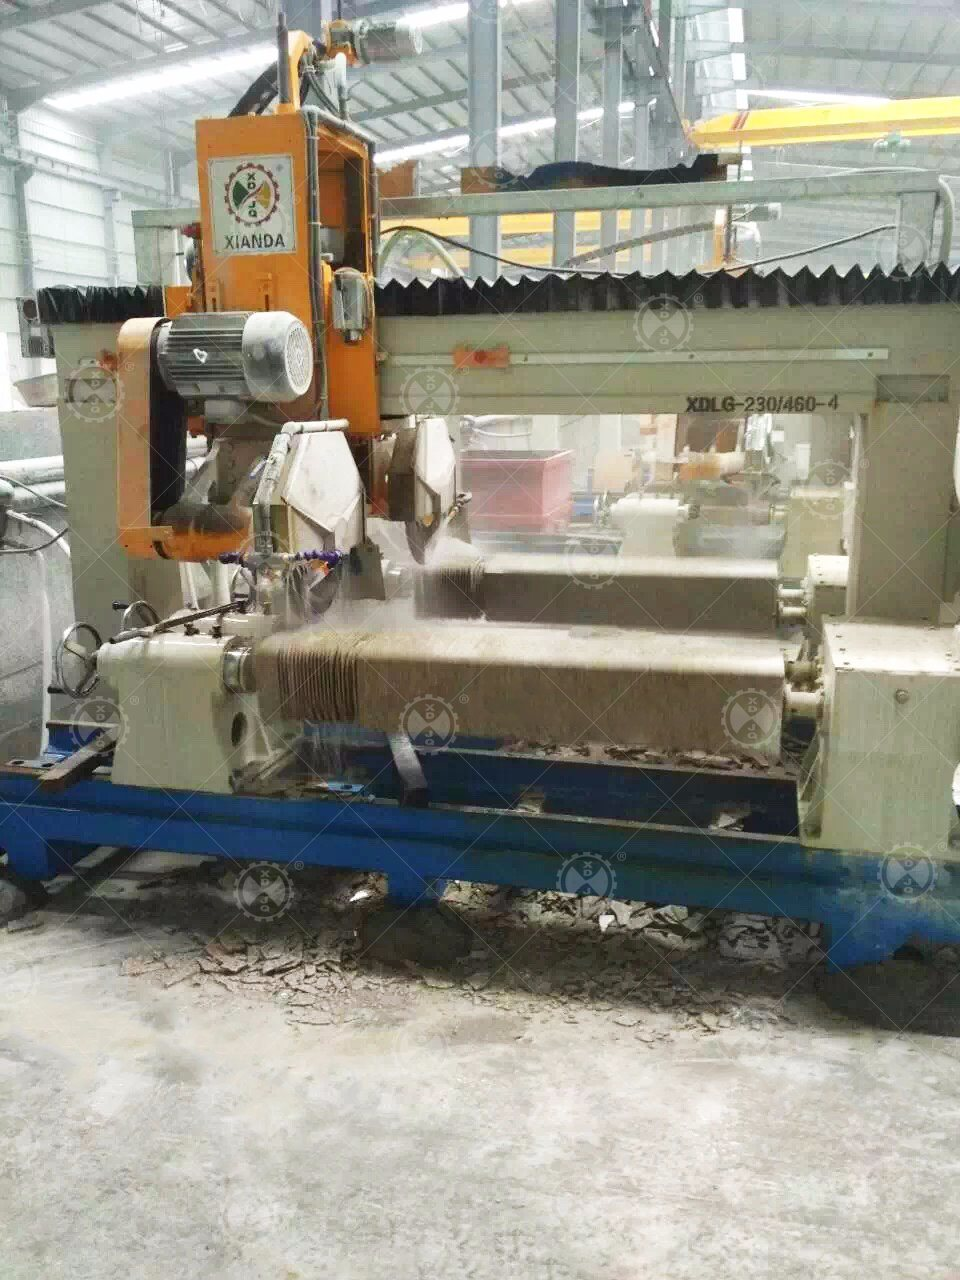 Fhrc-230/460-4 Marble Granite Handrail/Column/Balustrade Cutting Machine